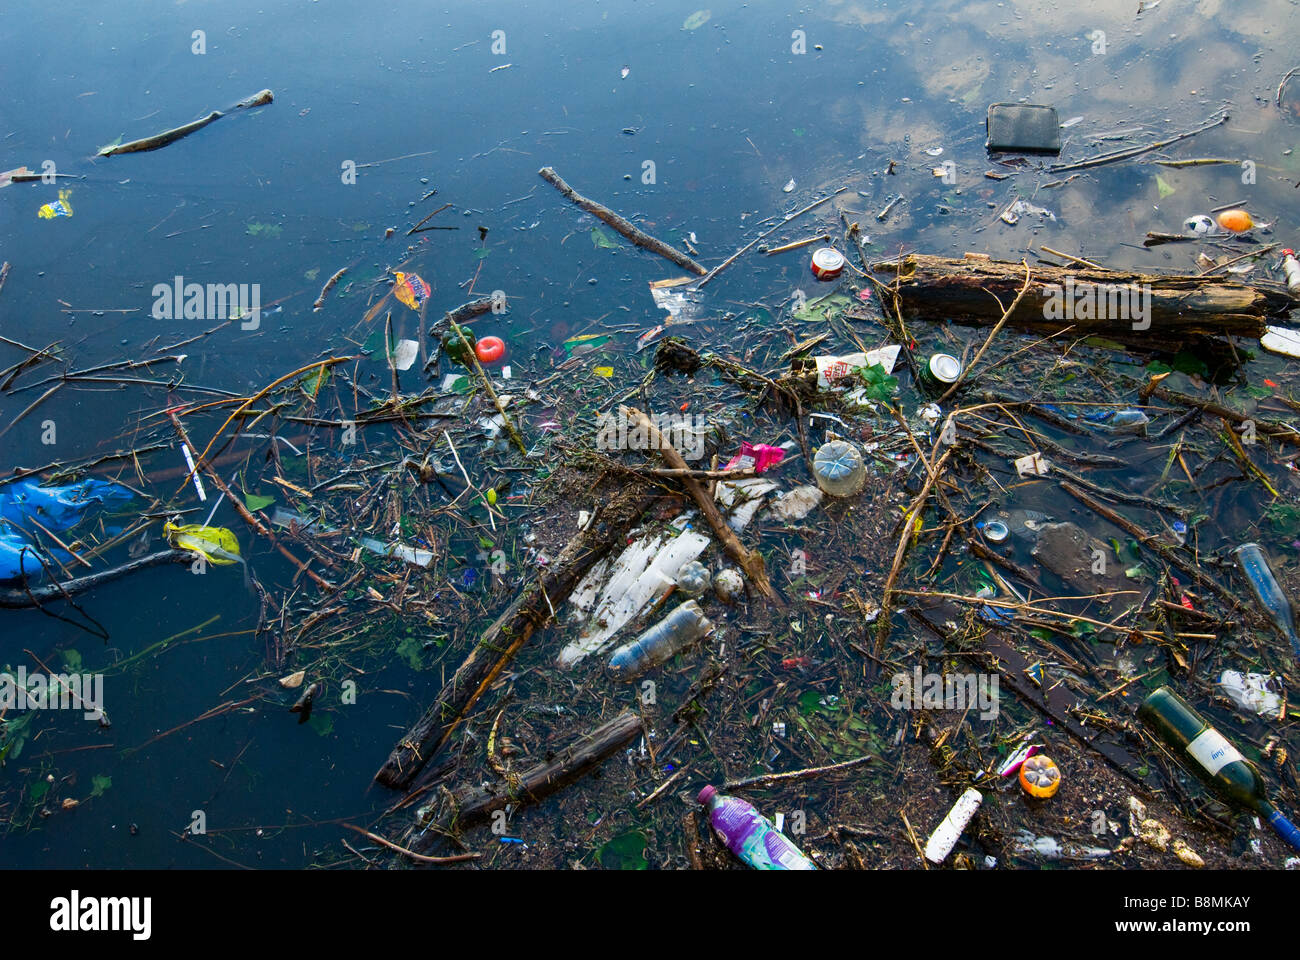 photograph of rubbish floating on water surface - Stock Image